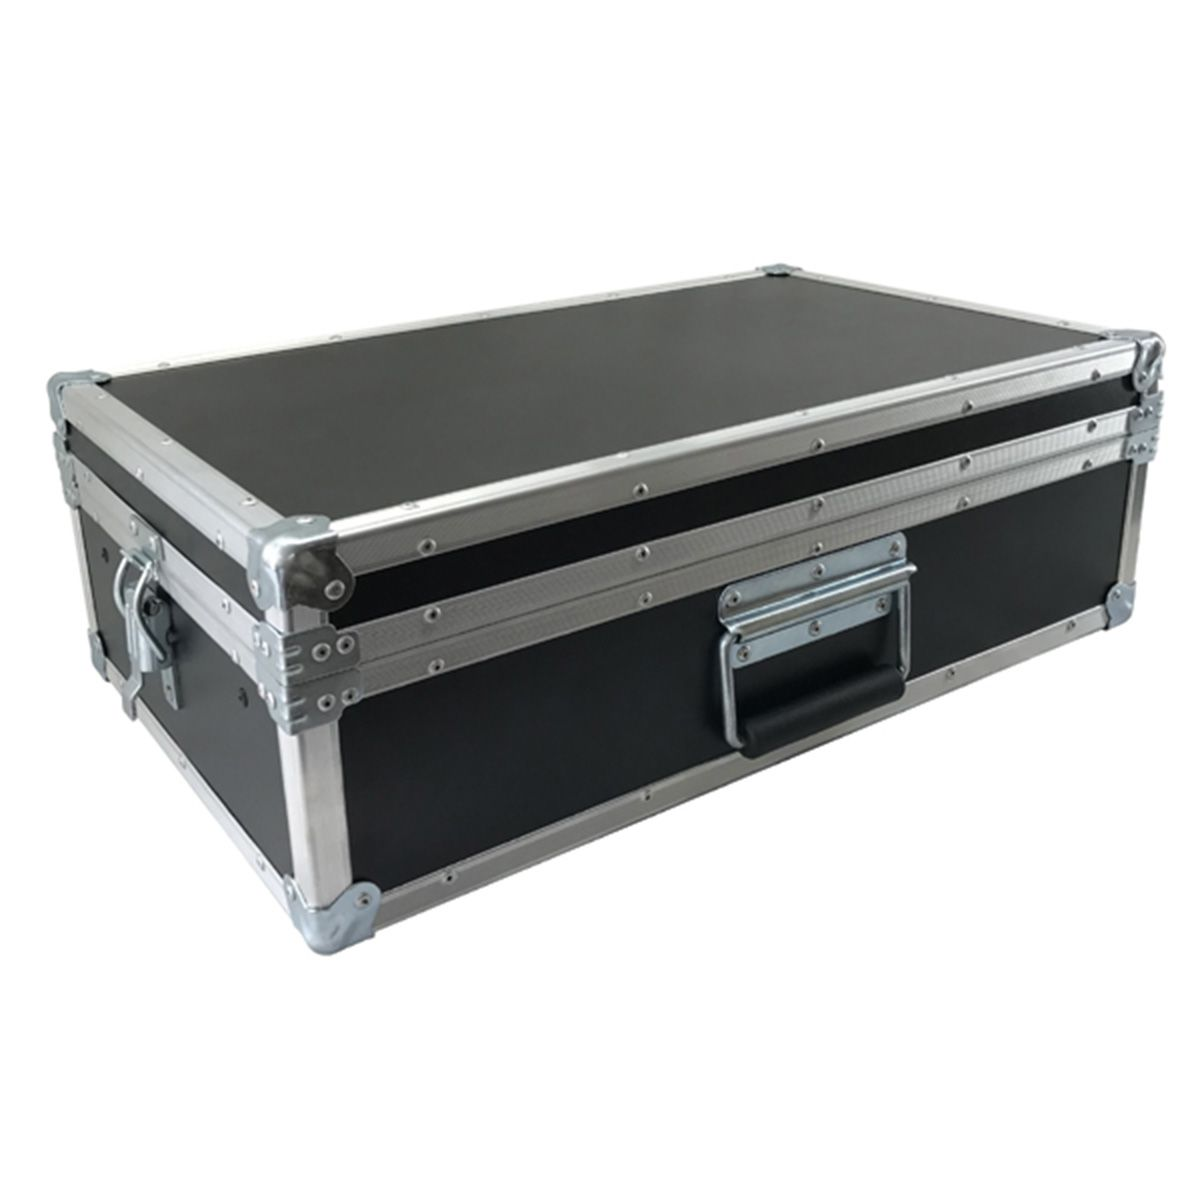 Hard Case Mesa DMX Pilot 2000 - RS